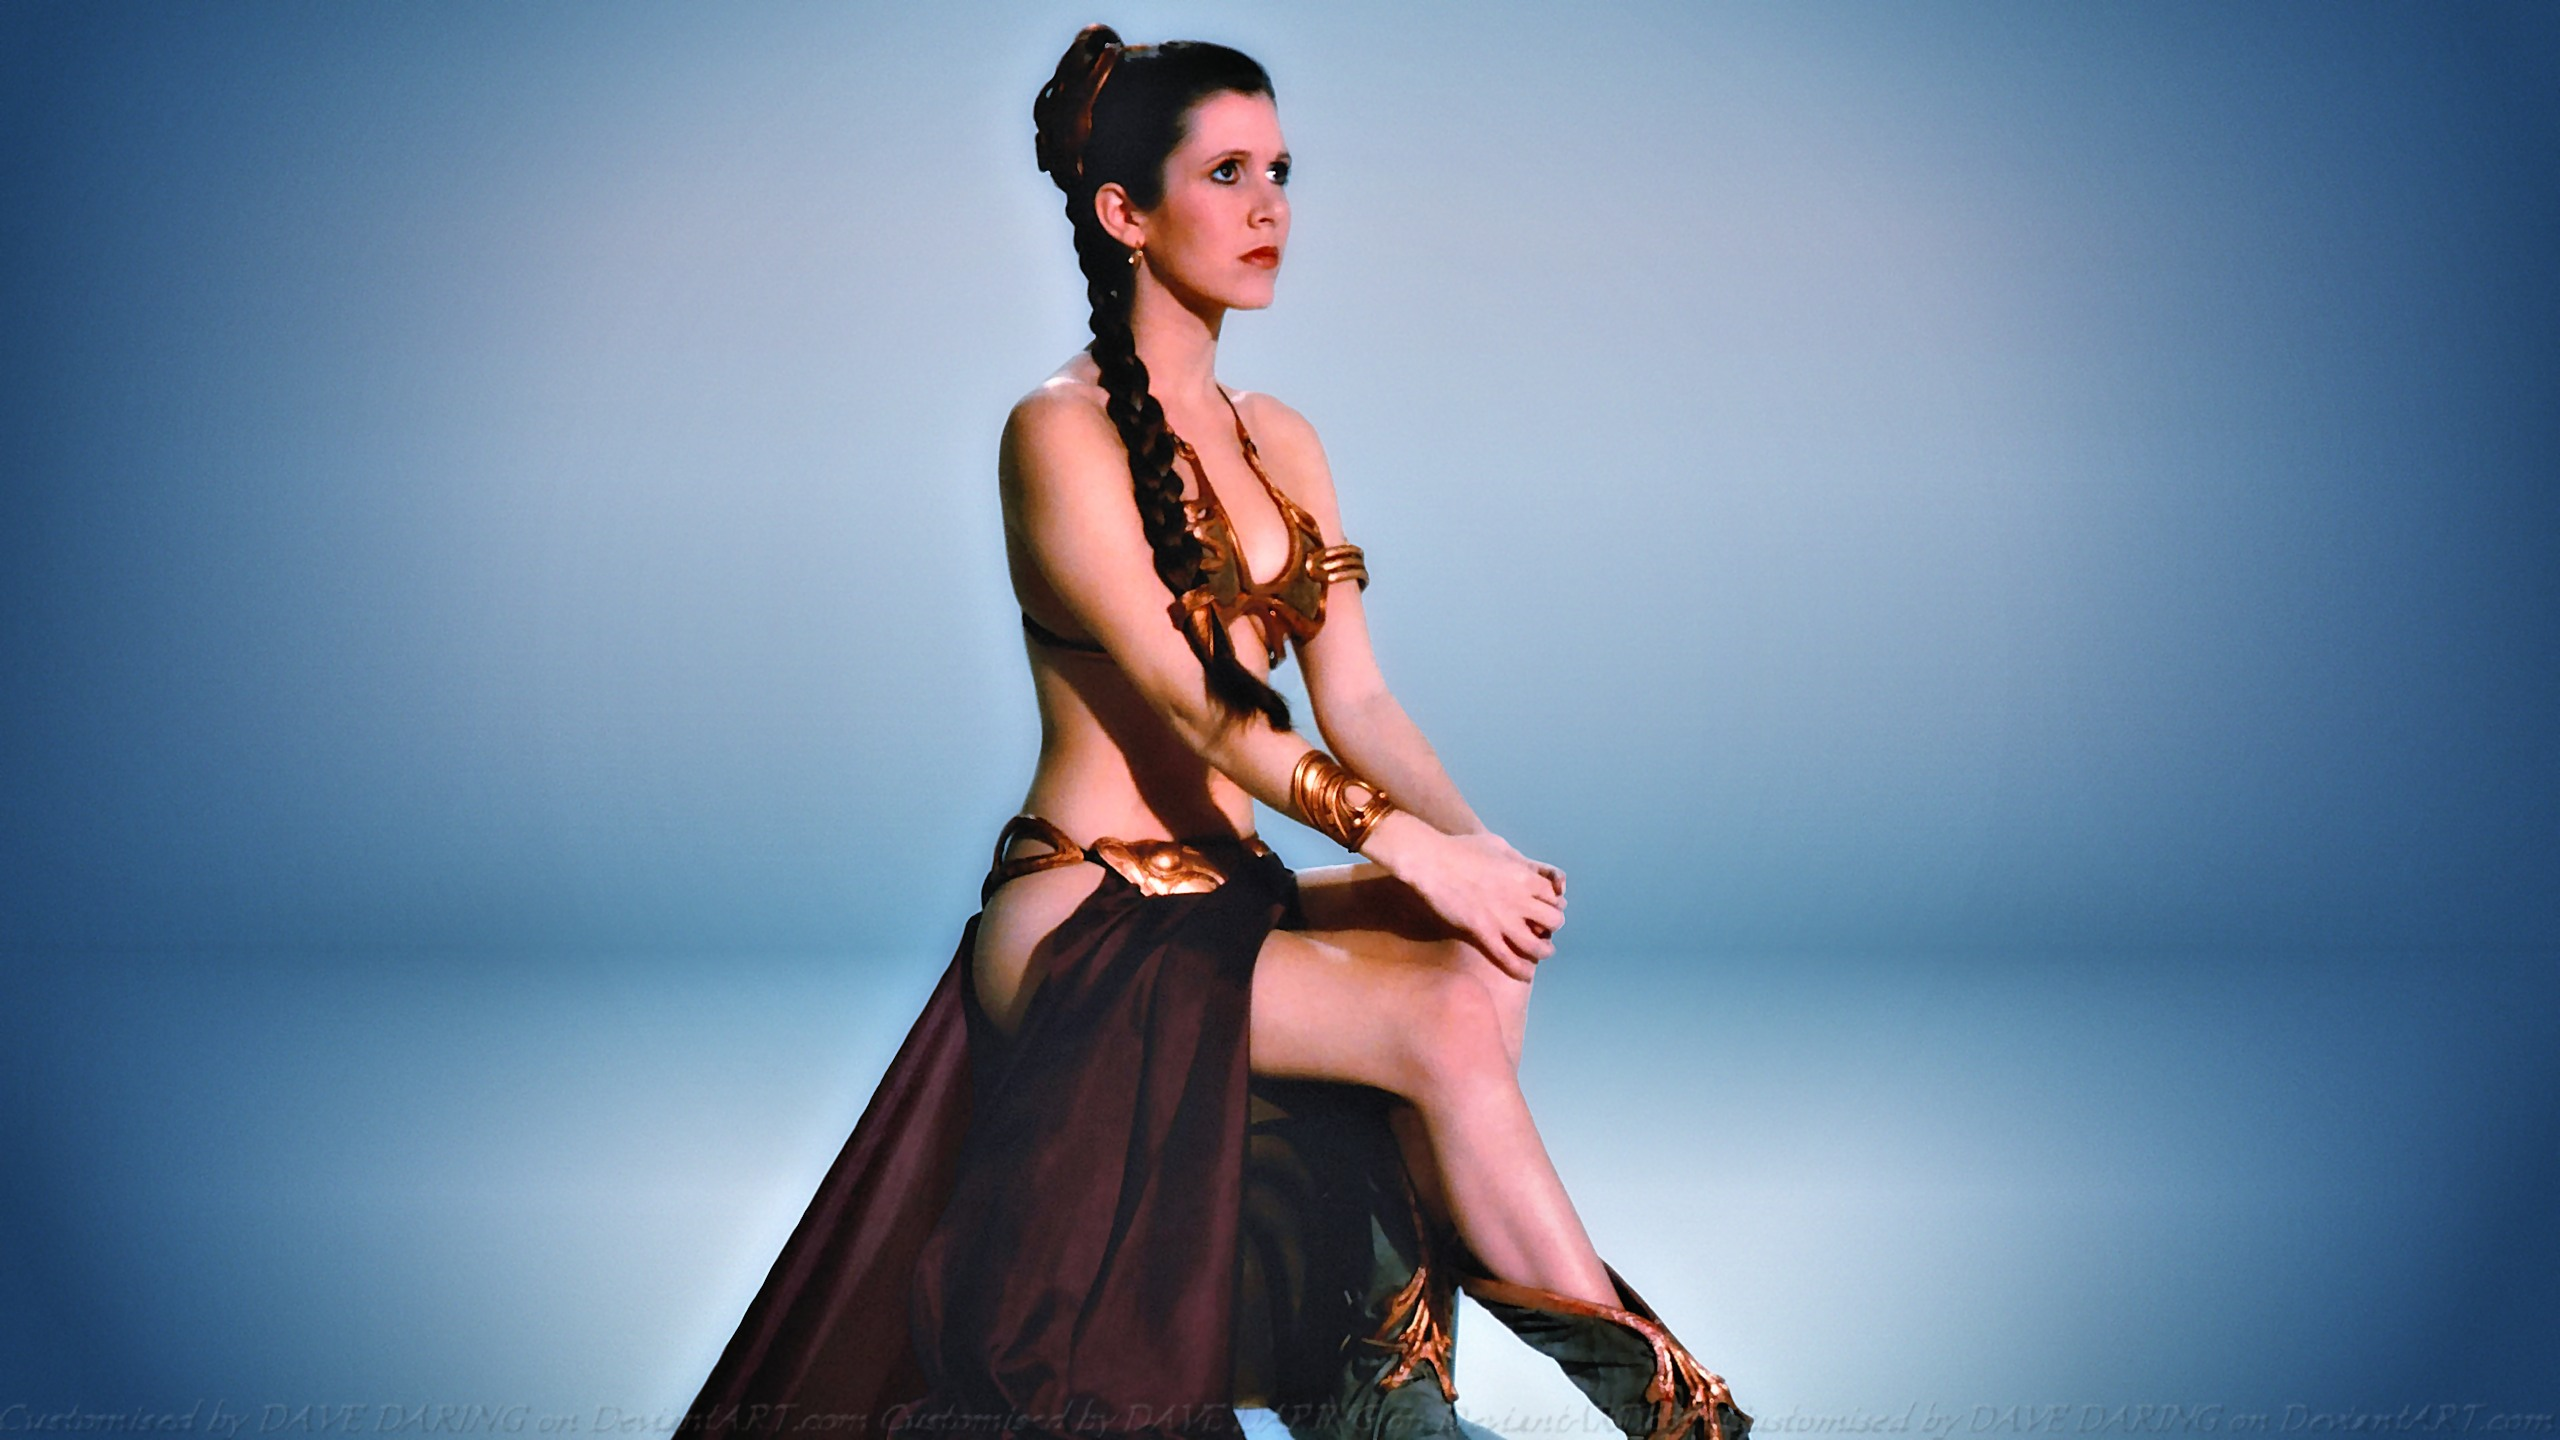 2560x1440 - Carrie Fisher Wallpapers 3